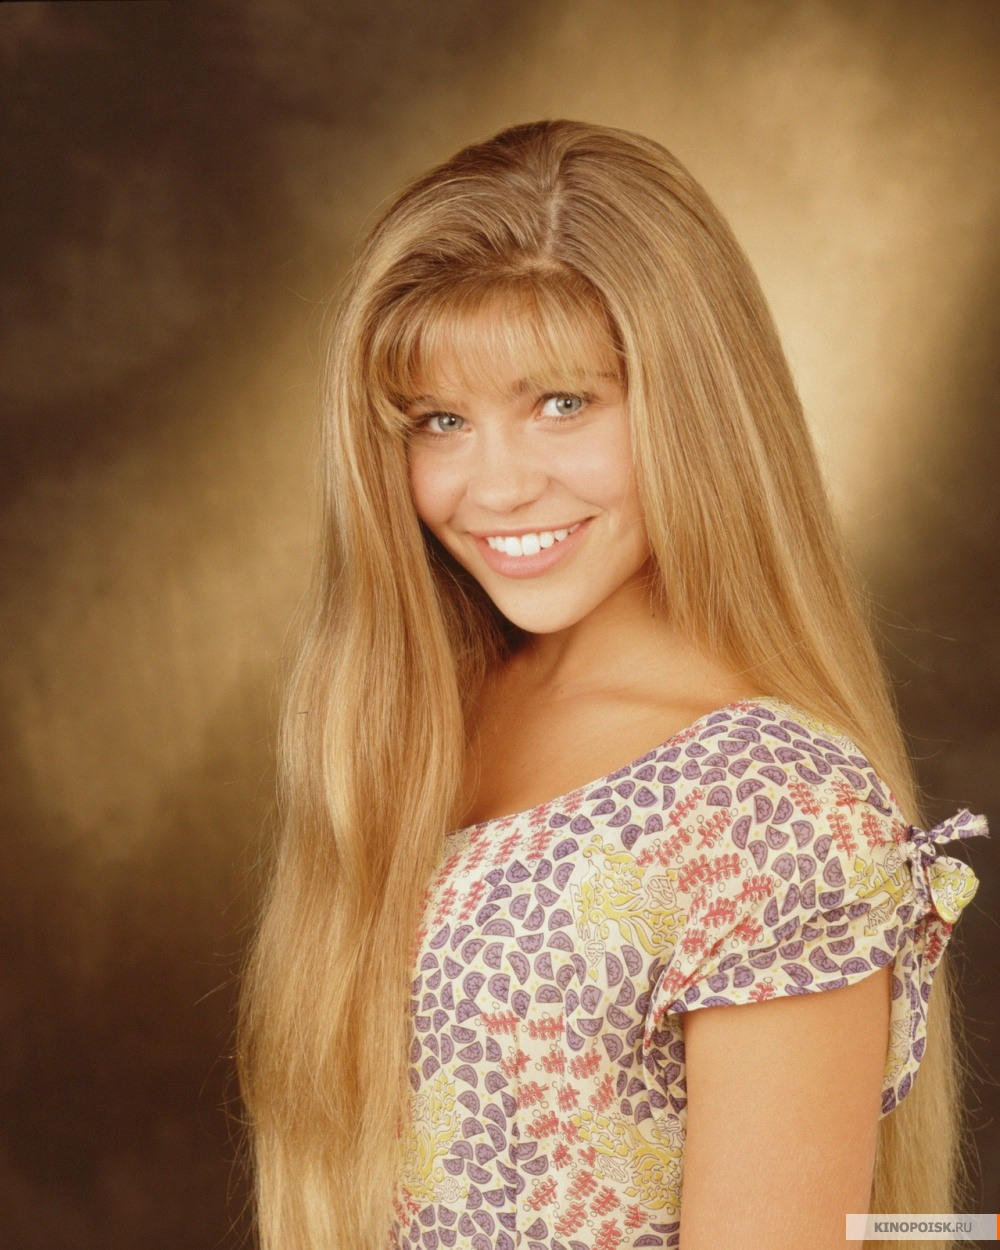 Pictures of topanga from boy meets world